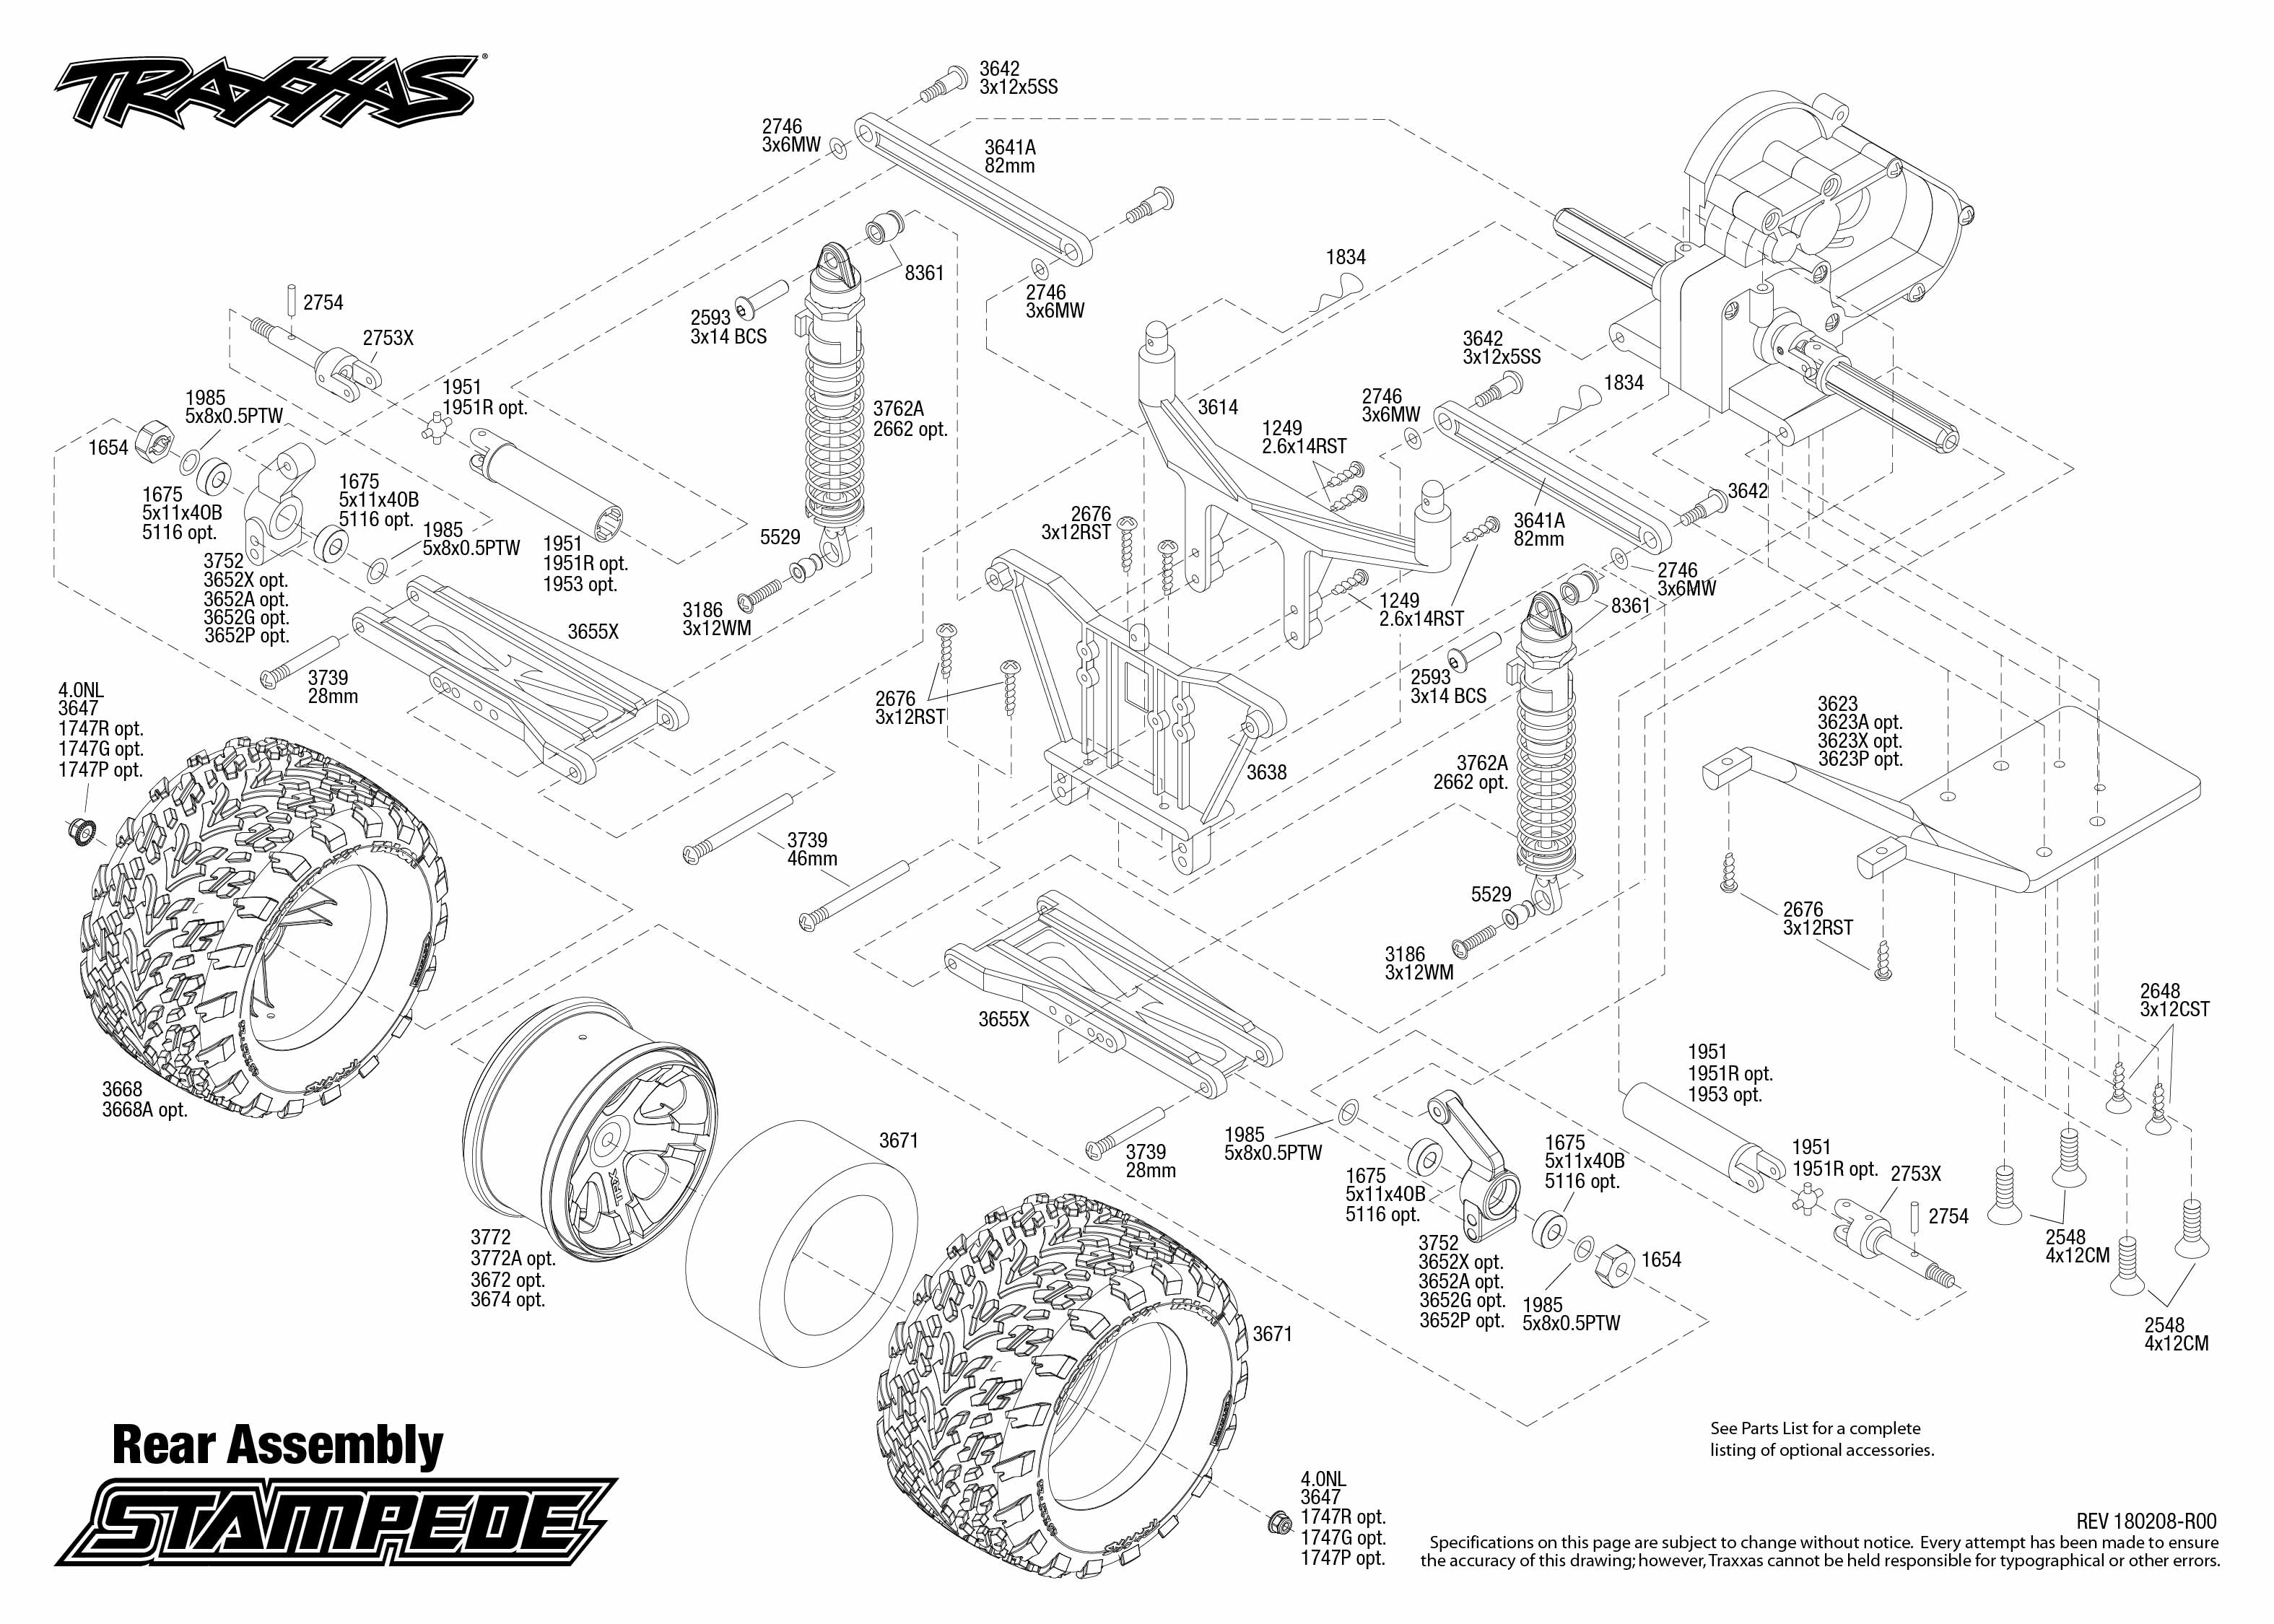 Stampede 4 Rear Assembly Exploded View